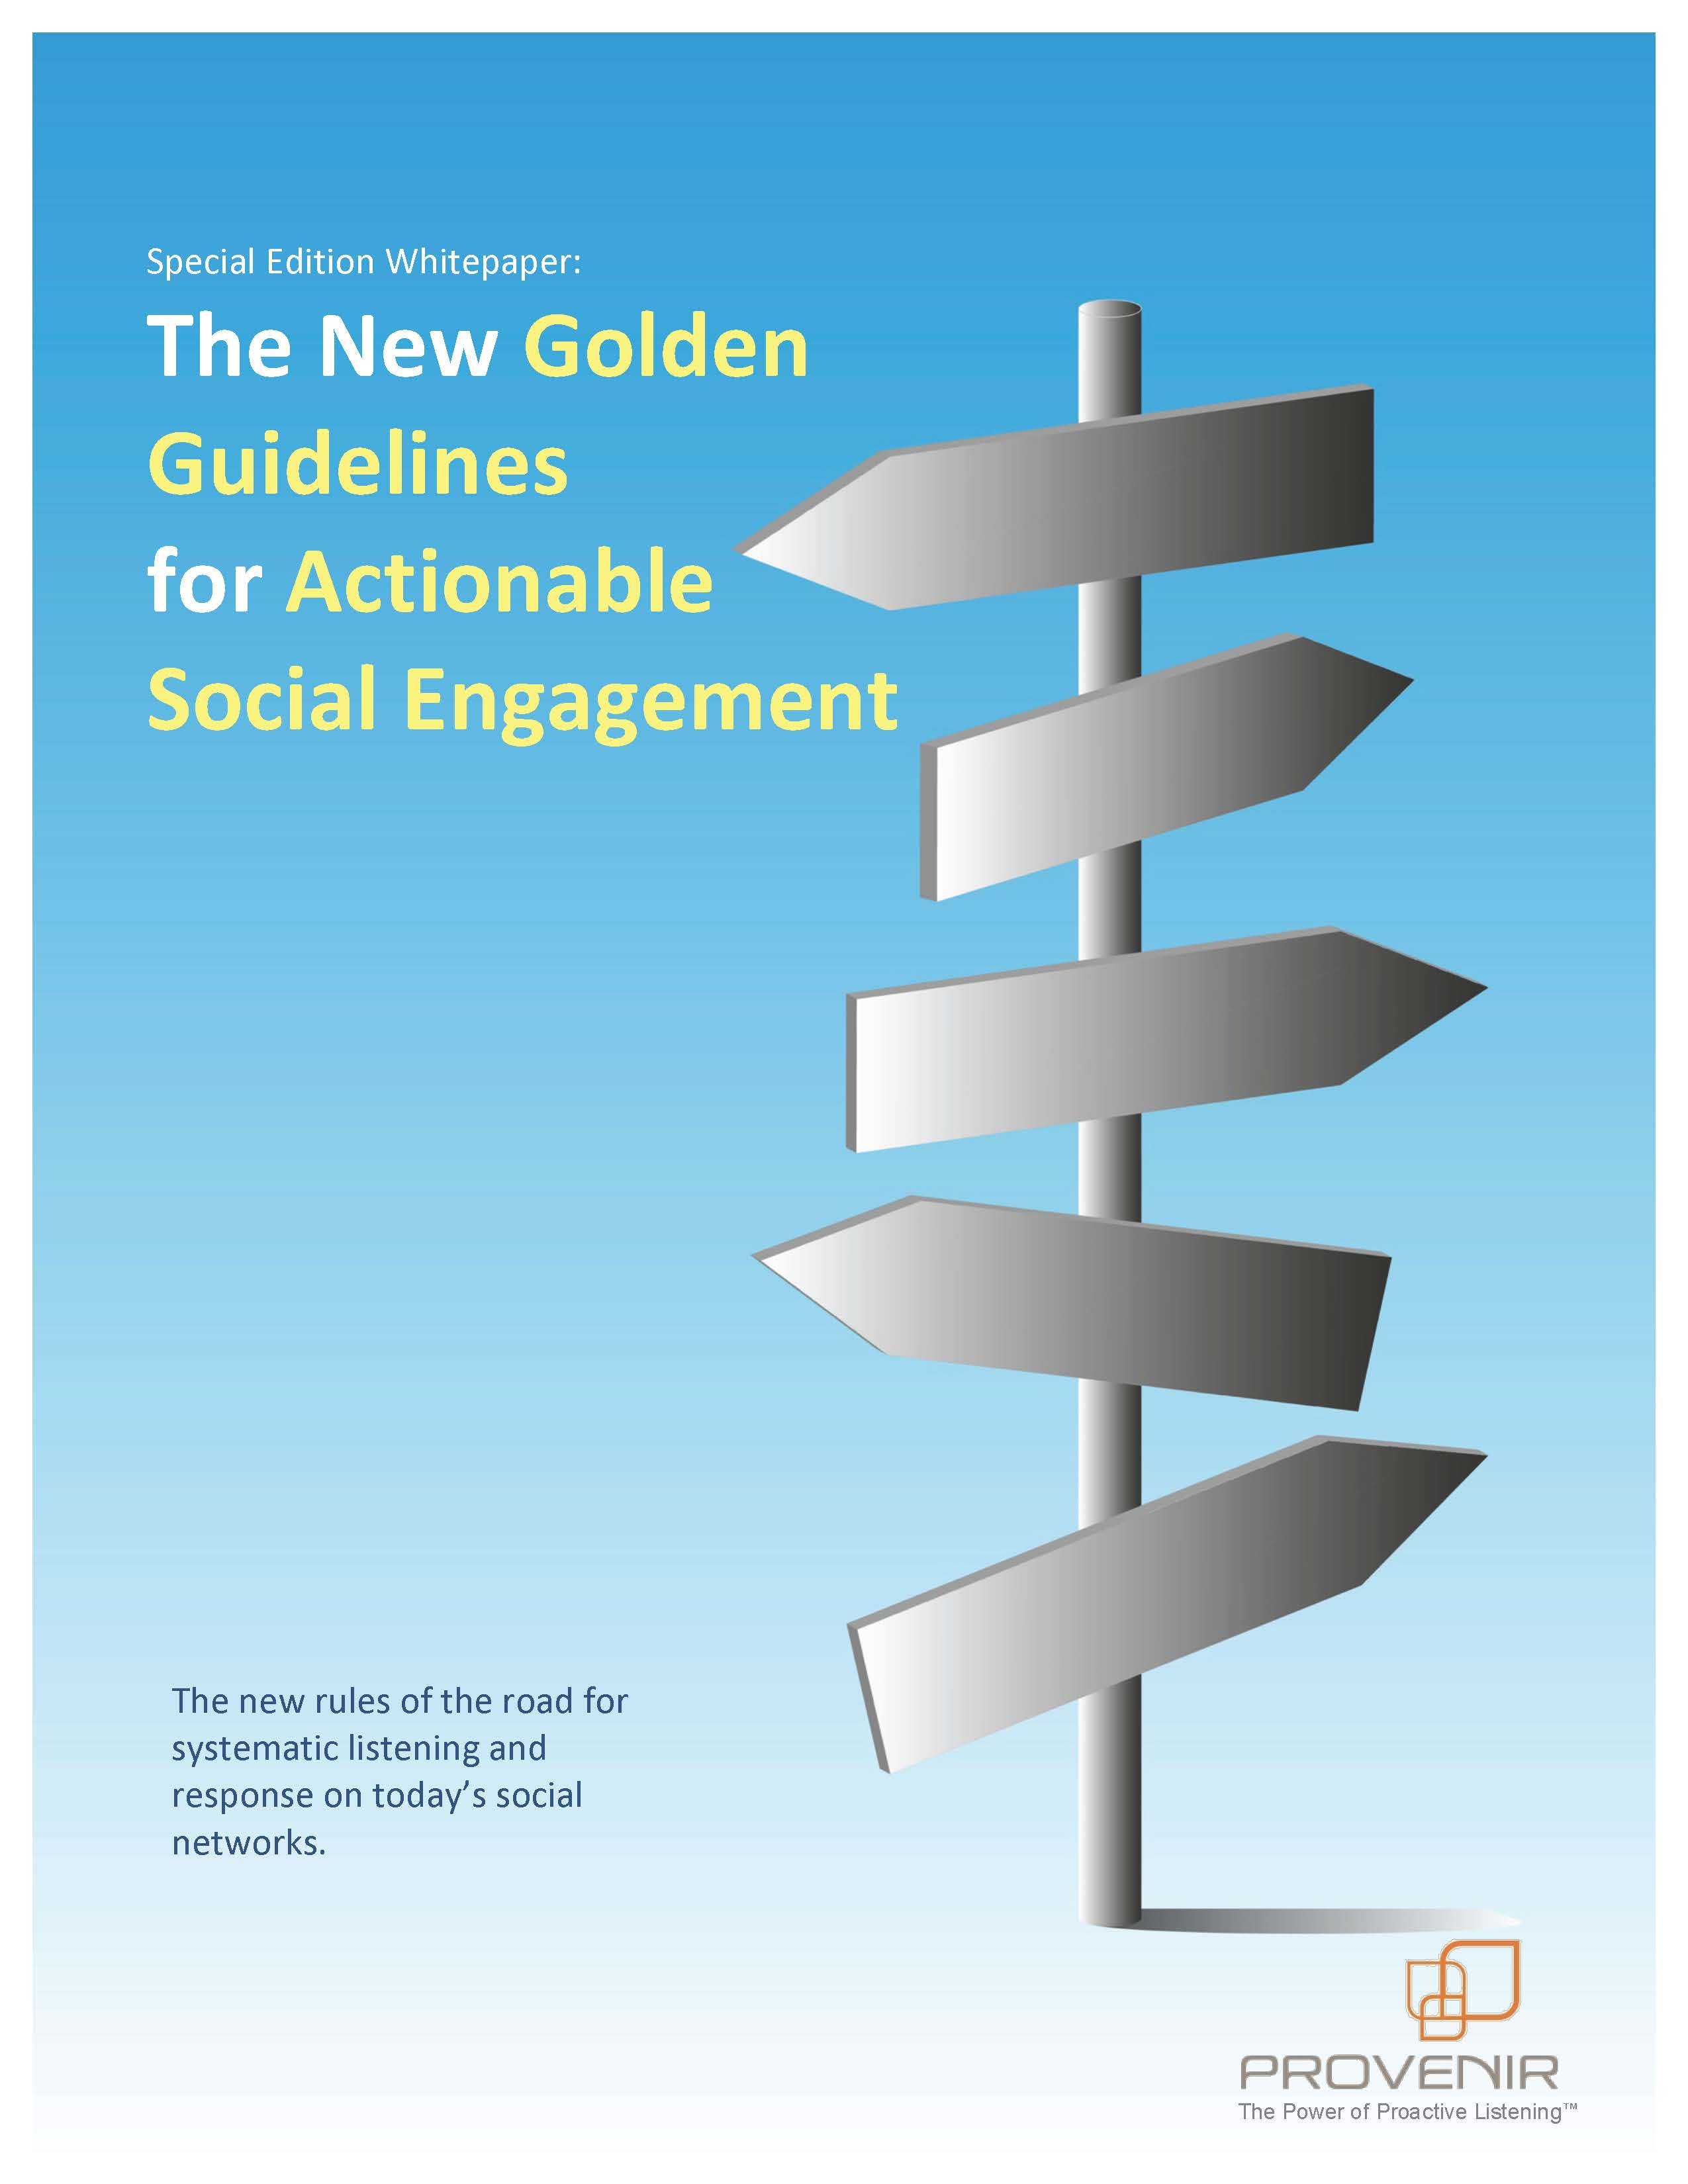 The New Golden Guidelines for Actionable Social Engagement